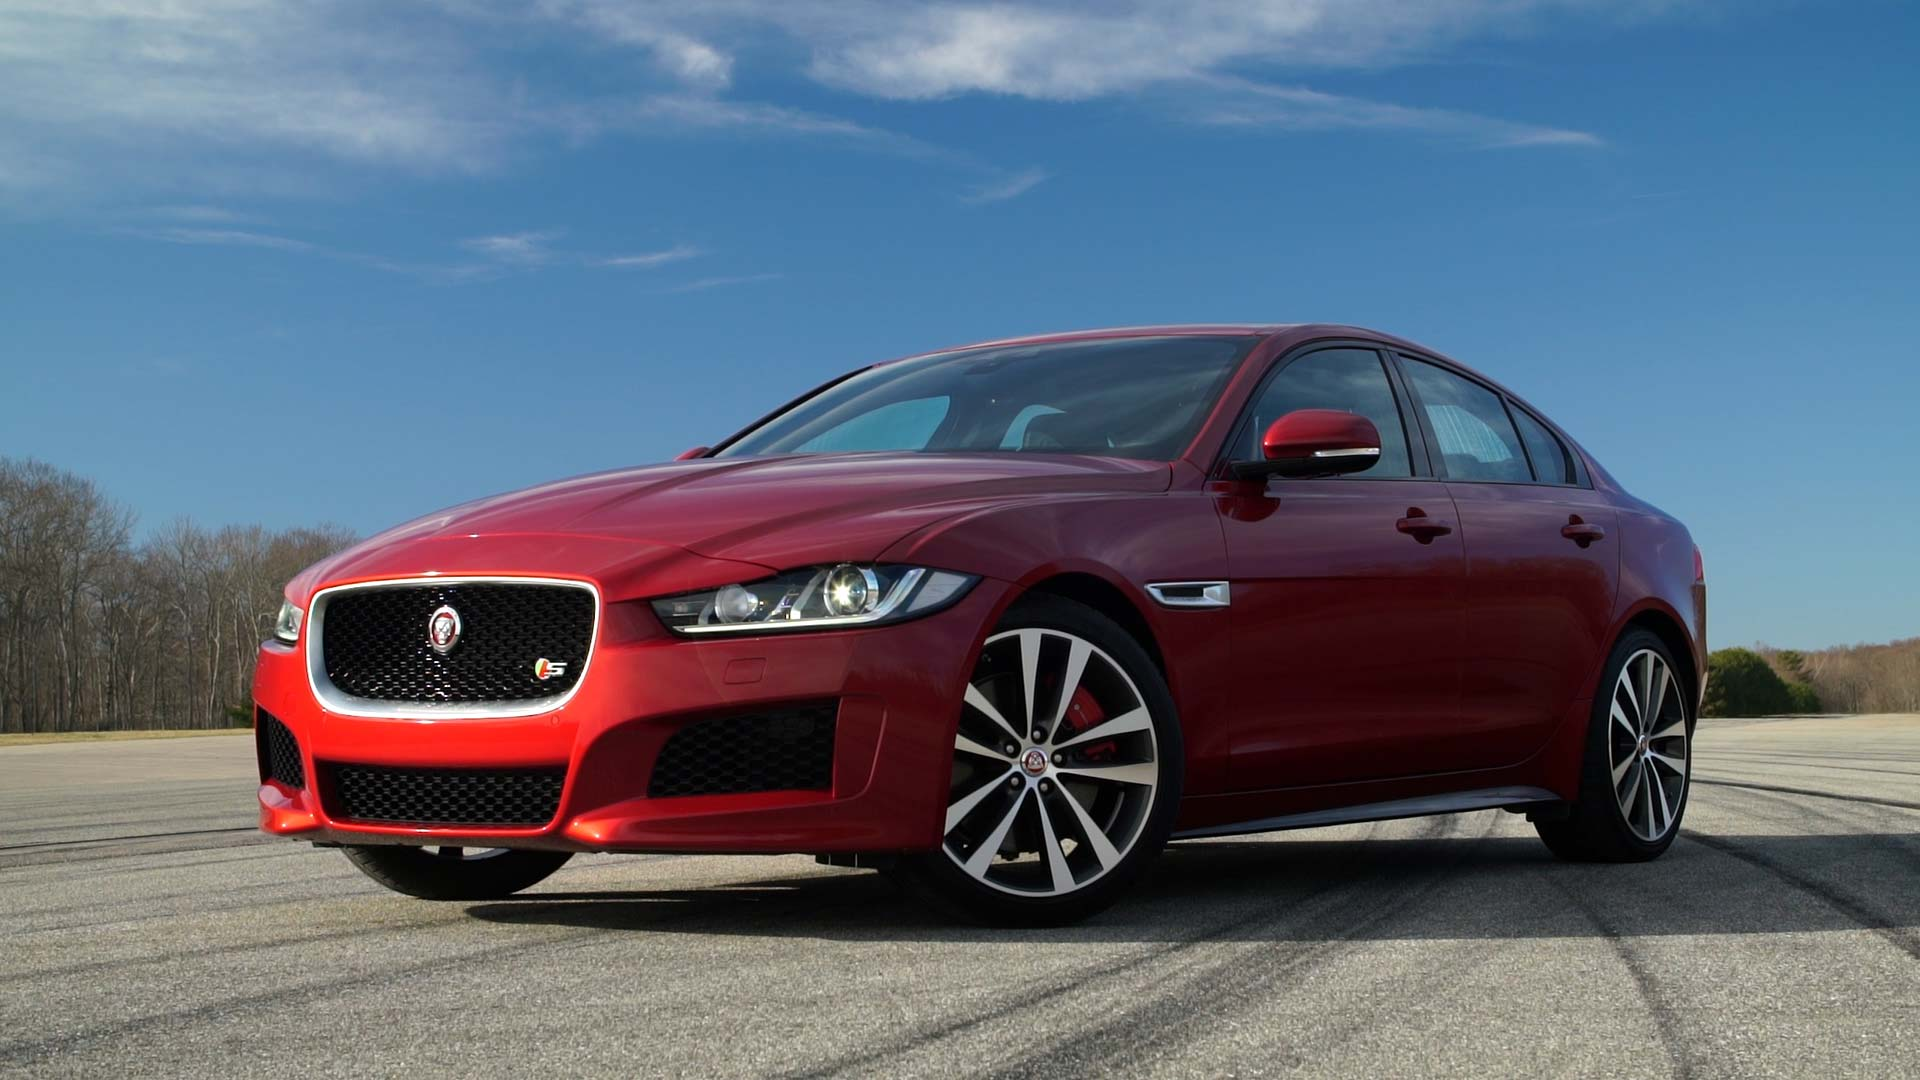 2018 Jaguar Xe Review Overpromised Underdelivered Consumer Reports